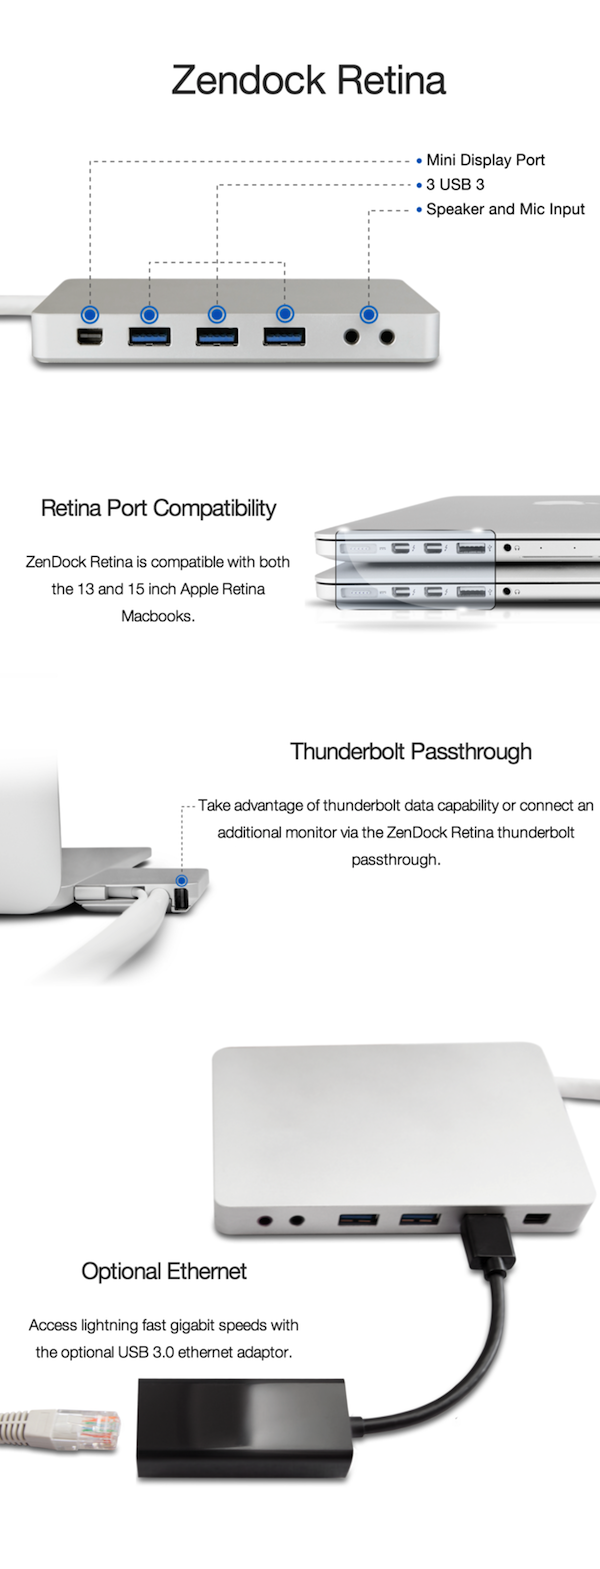 Zendock Retina Connection